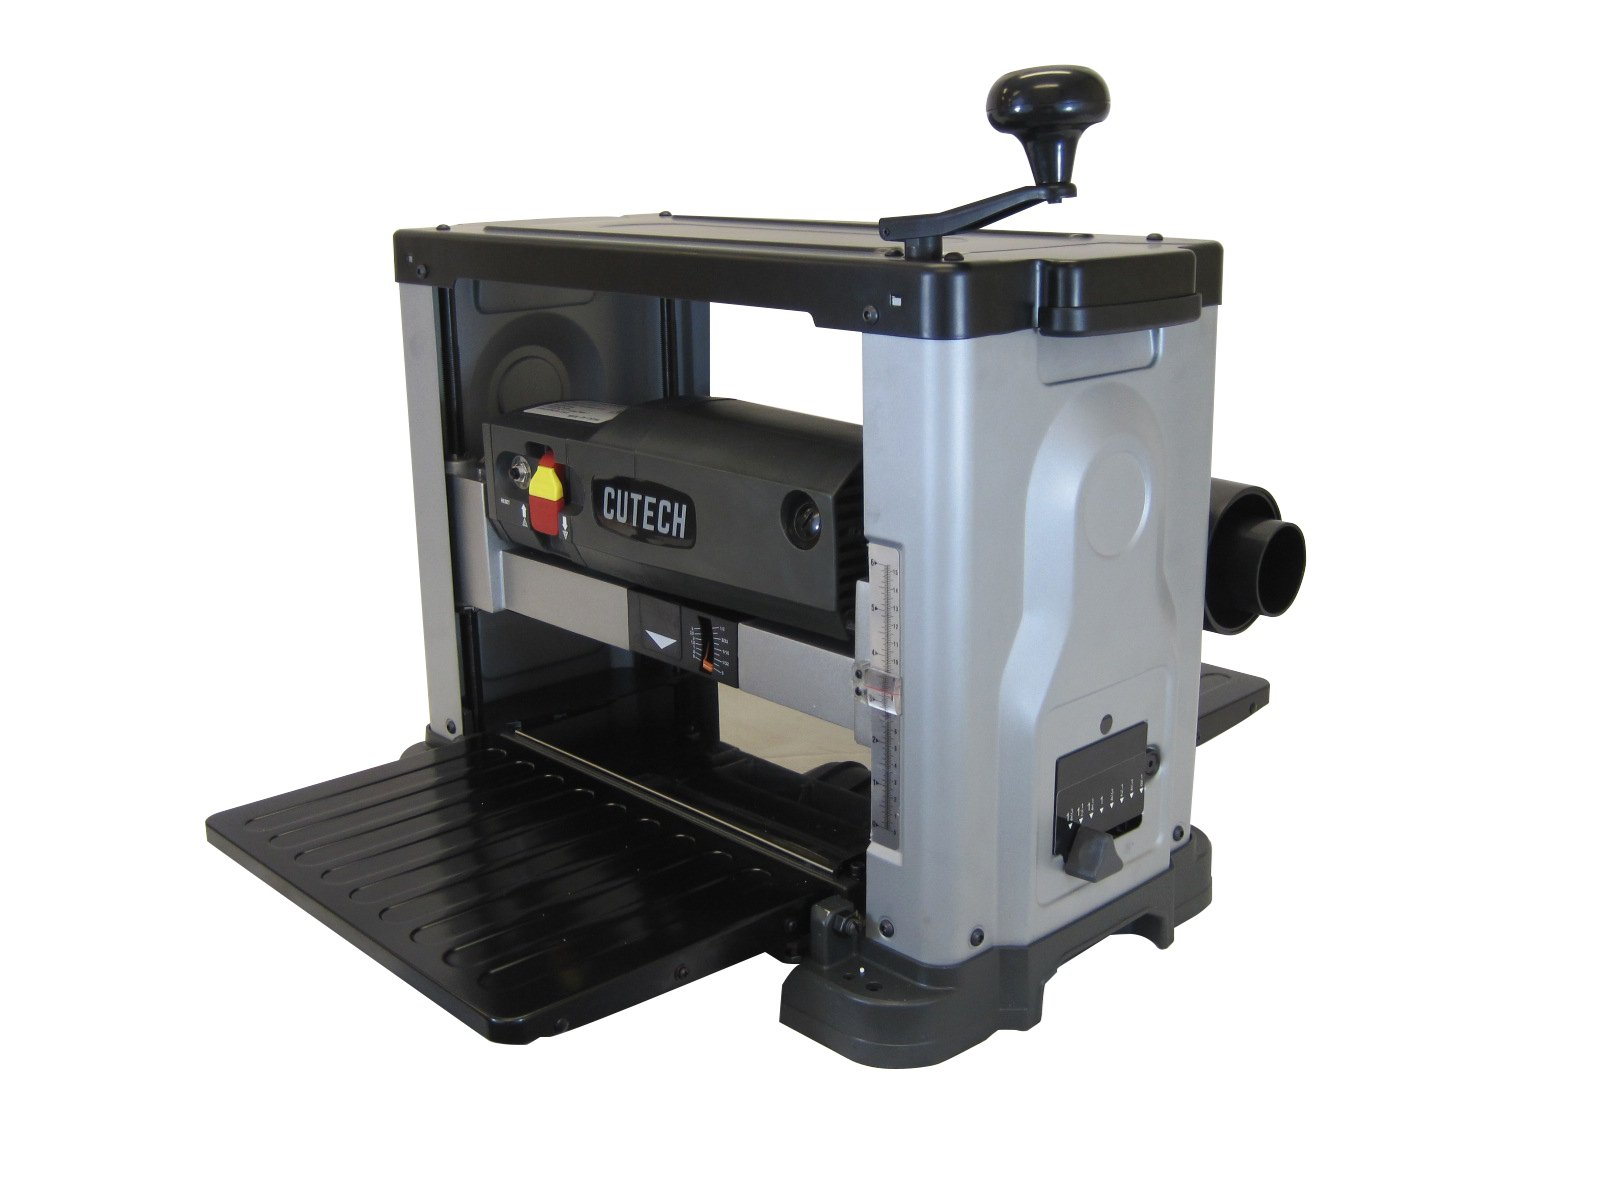 Cutech 40600H-CT 13'' Spiral Cutterhead Planer - Deluxe Model Plus